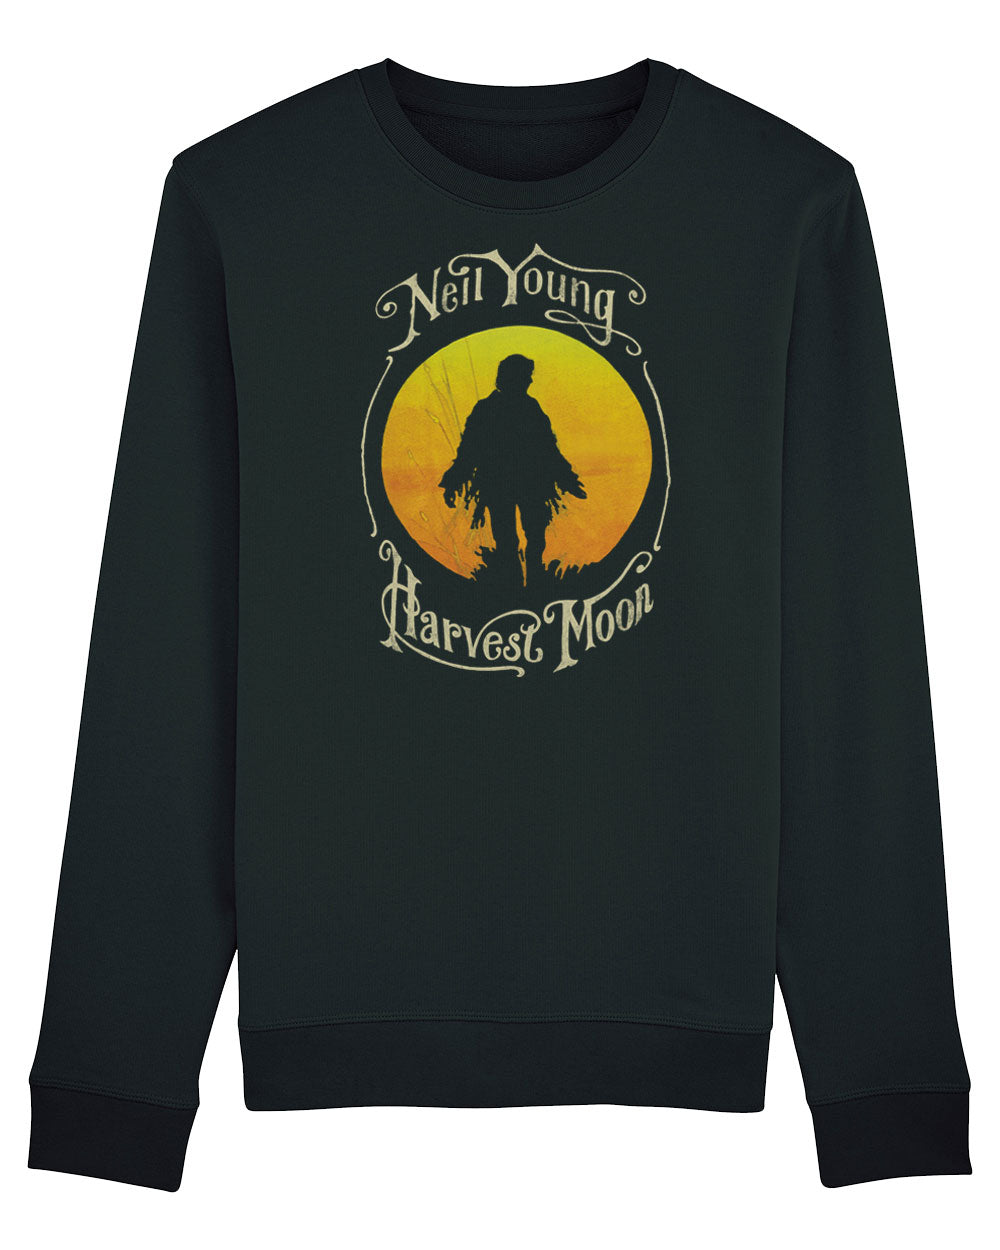 Neil Young Sweat Shirt - Neil Young Harvest Moon Sweat Shirt